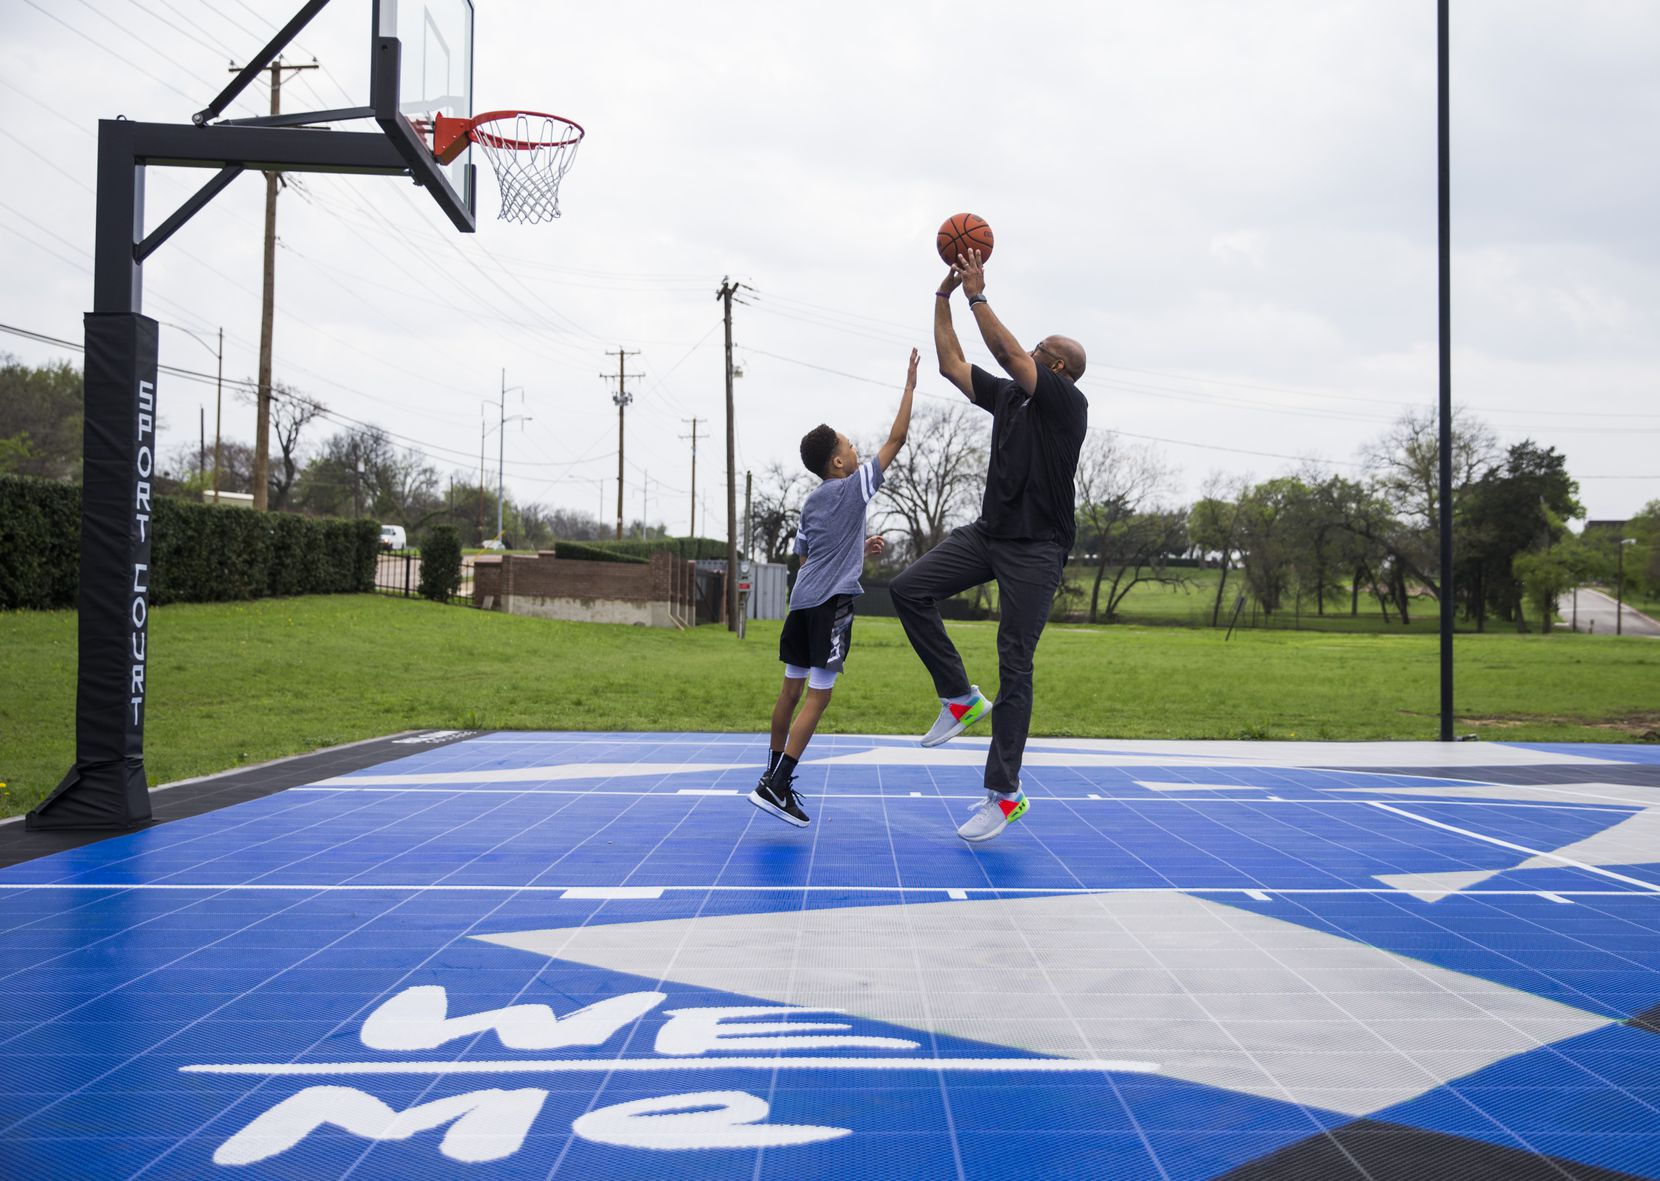 Paul Quinn College president Michael Sorrell played basketball with his 9-year-old son, Michael, last week on the college's campus.